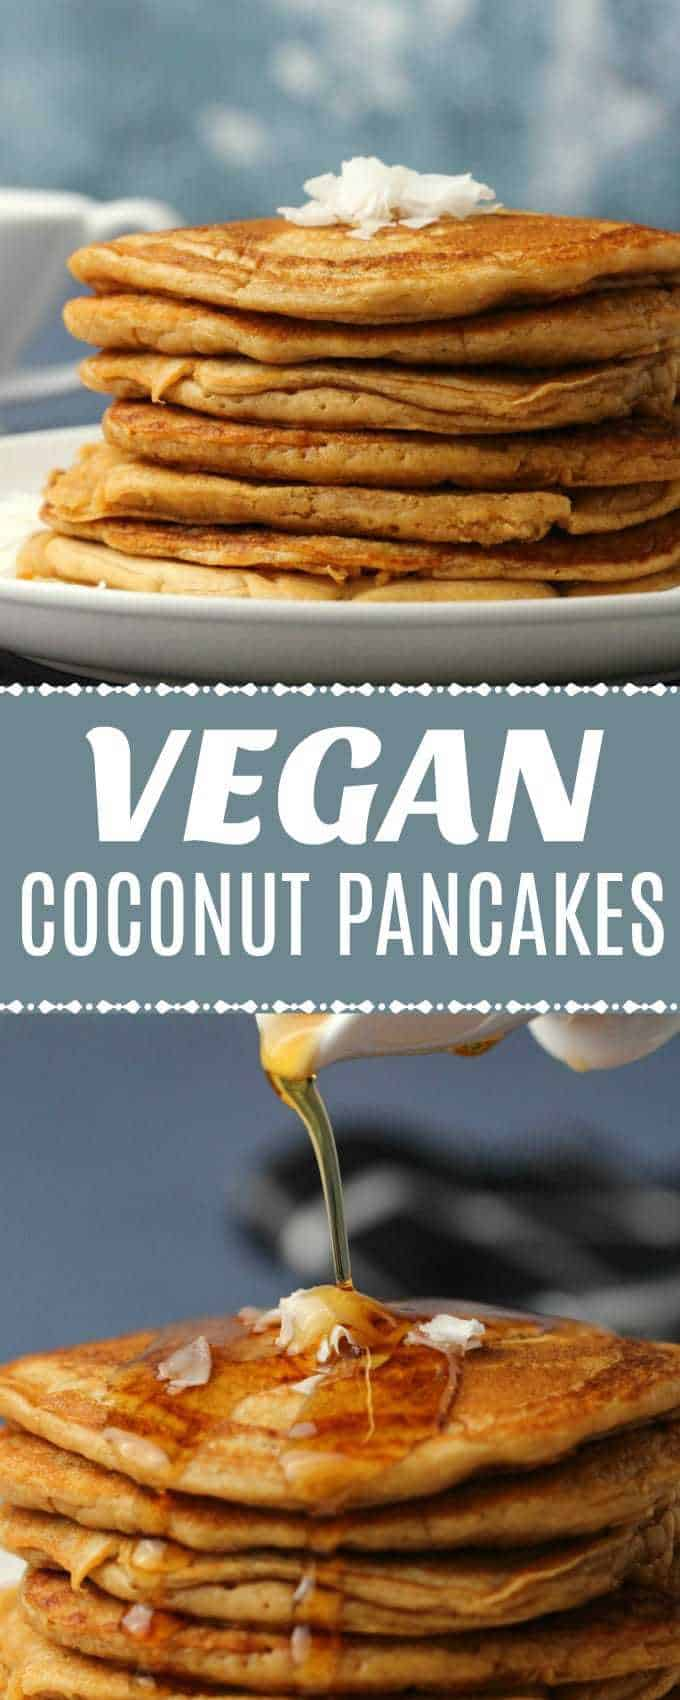 Deliciously simple vegan coconut pancakes, light and fluffy and perfect for breakfast topped with coconut flakes and maple syrup.| lovingitvegan.com